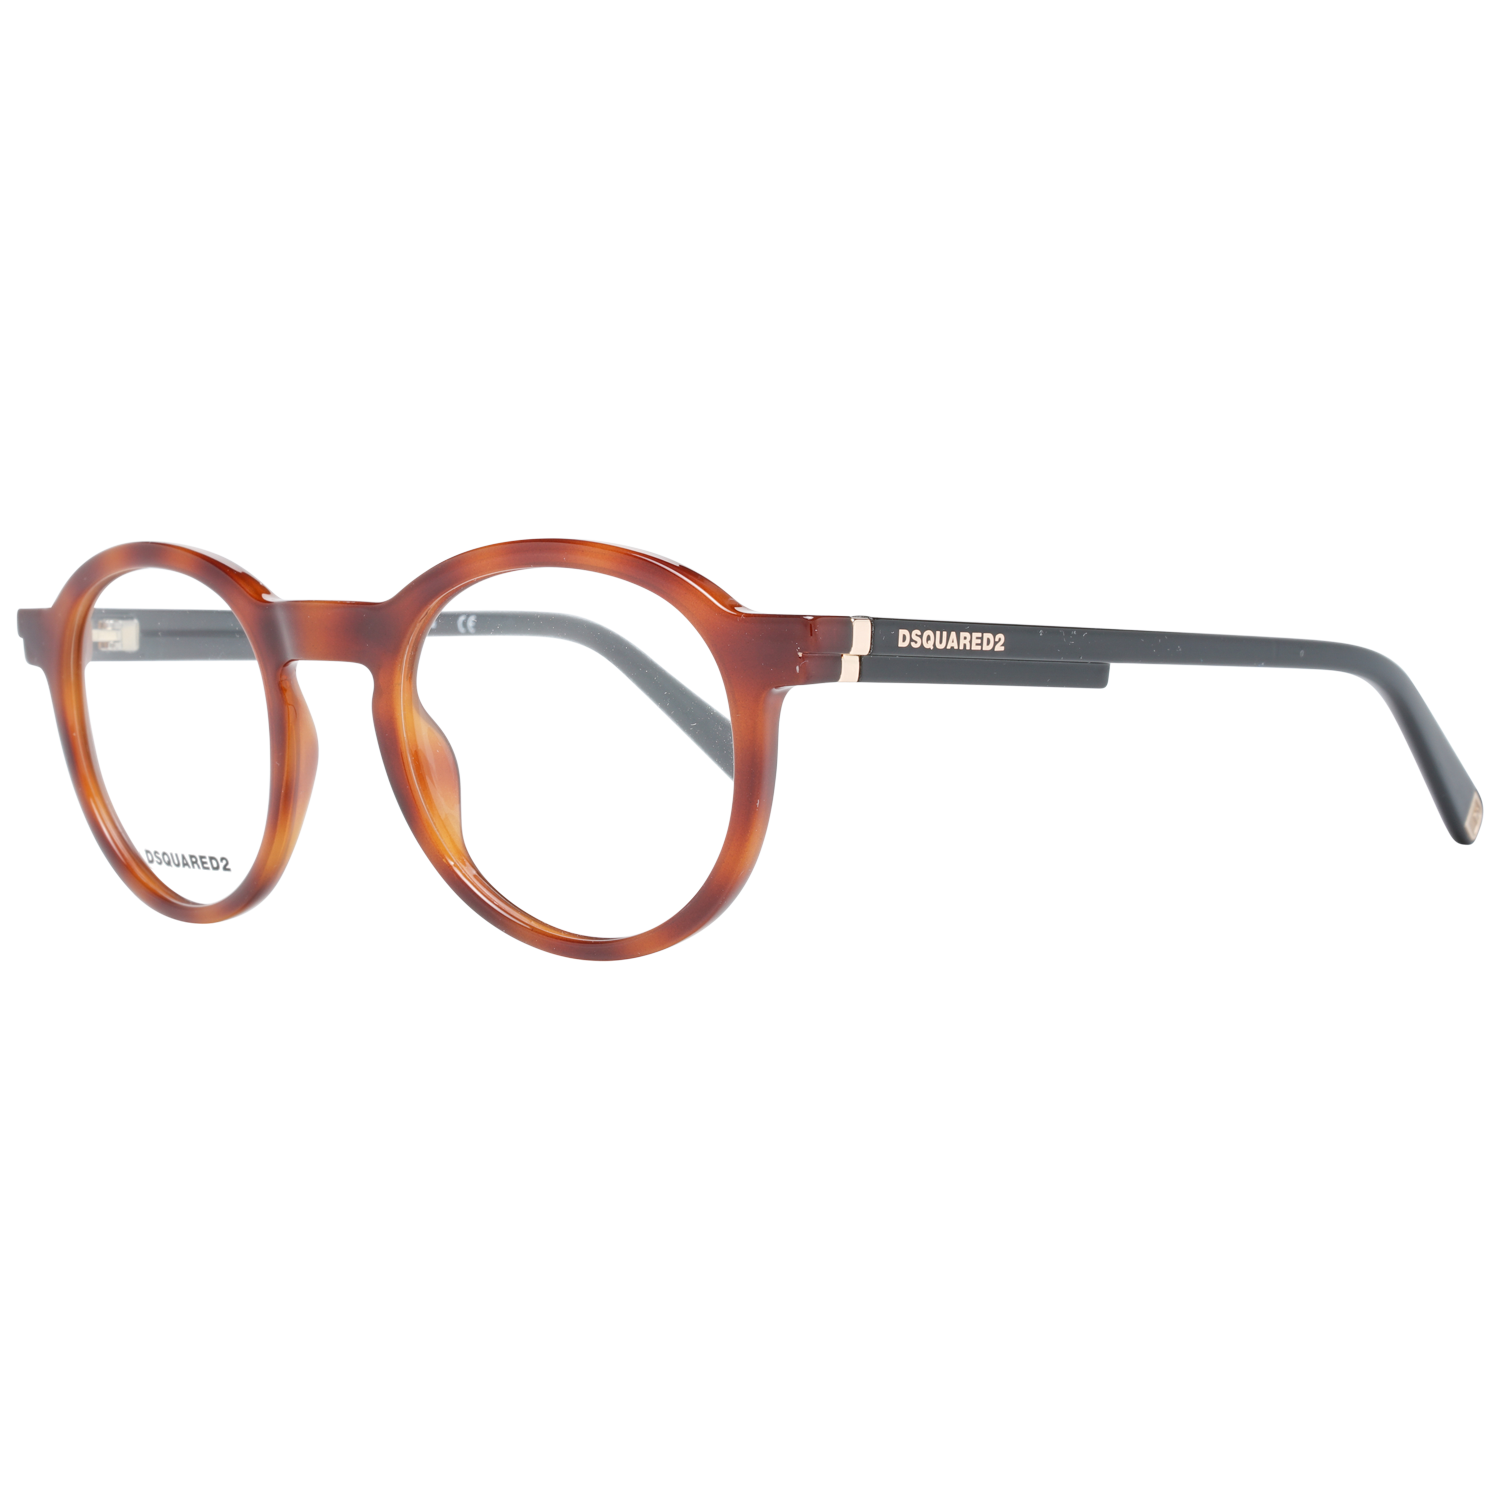 Dsquared2 Optical Frame DQ5249 052 47 Brown